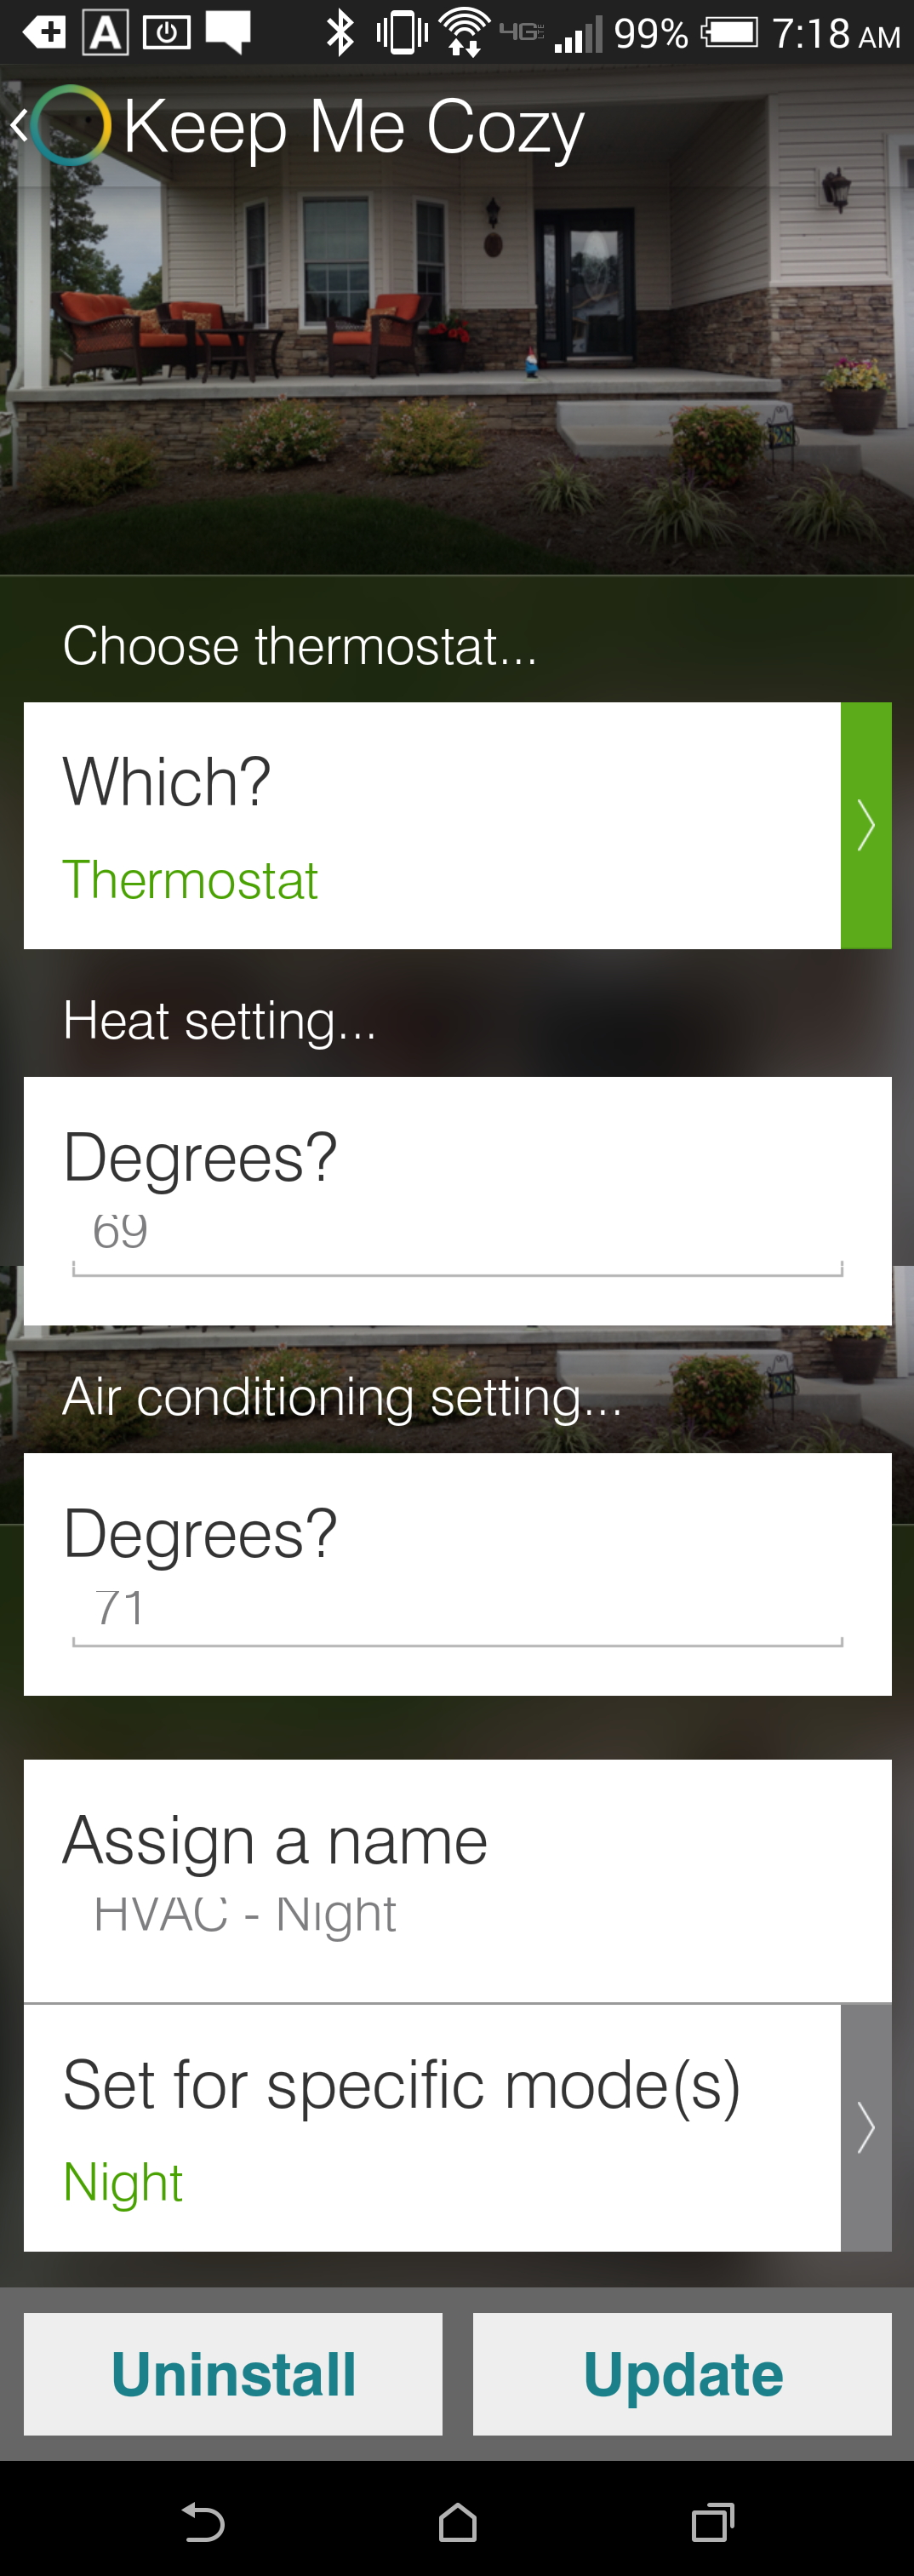 "Smartthings ""Keep Me Cozy"" App - Configured as ""HVAC - Night"".  When Smartthings home hub is set to ""Night"" mode, this app fires, setting our HVAC Night Time Setpoints"